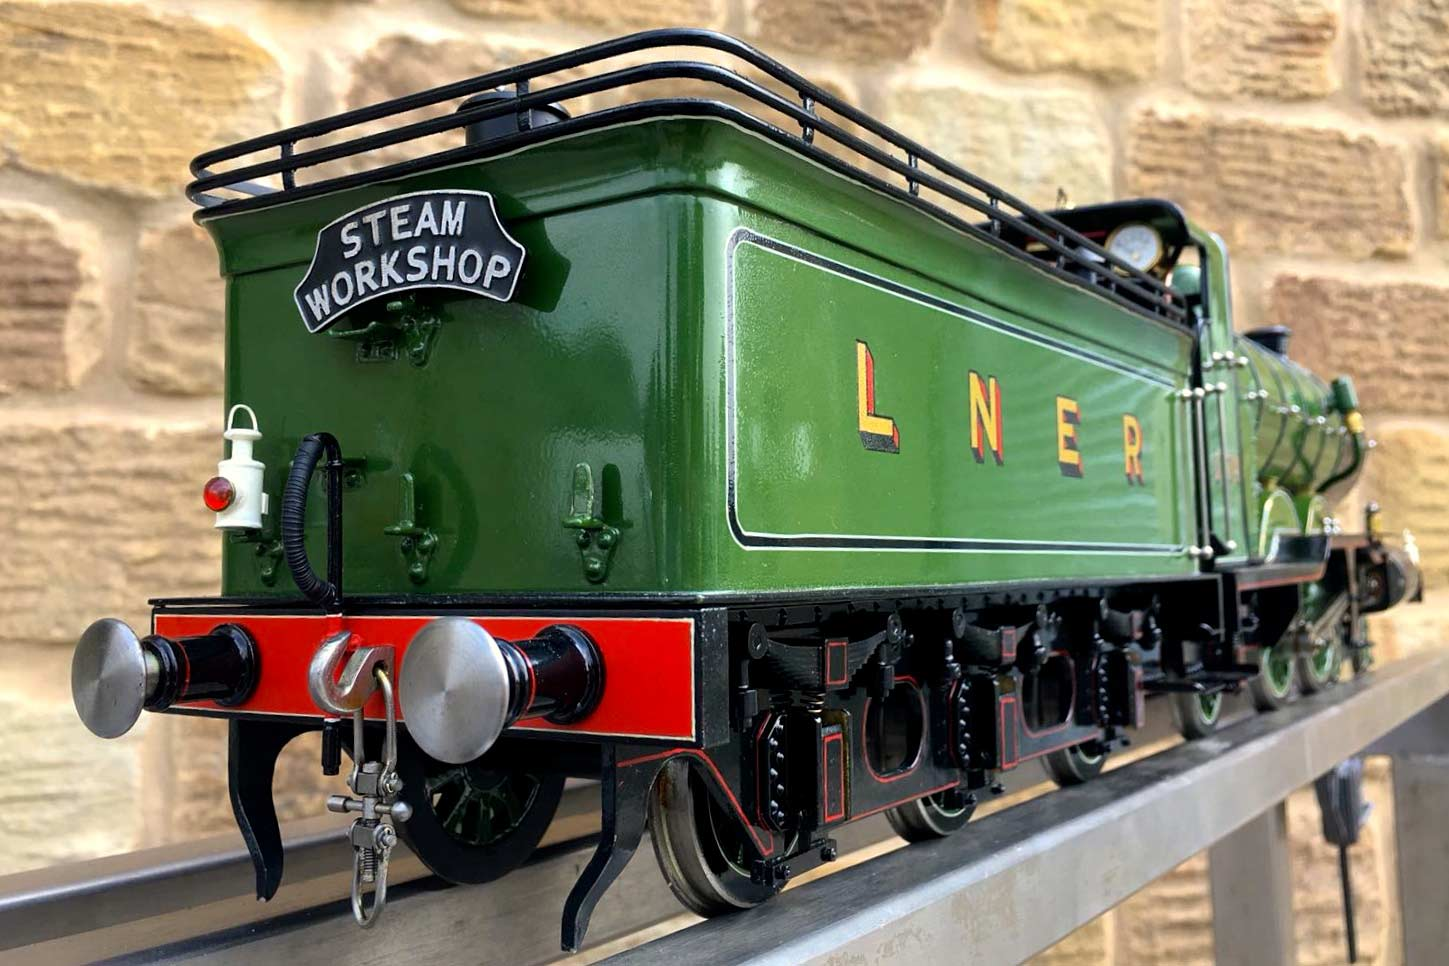 test 2-and-a-half-inch-gauge-3-GNR-C1-Atlantic-Ayesha-live-steam-locomotive-for-sale-18